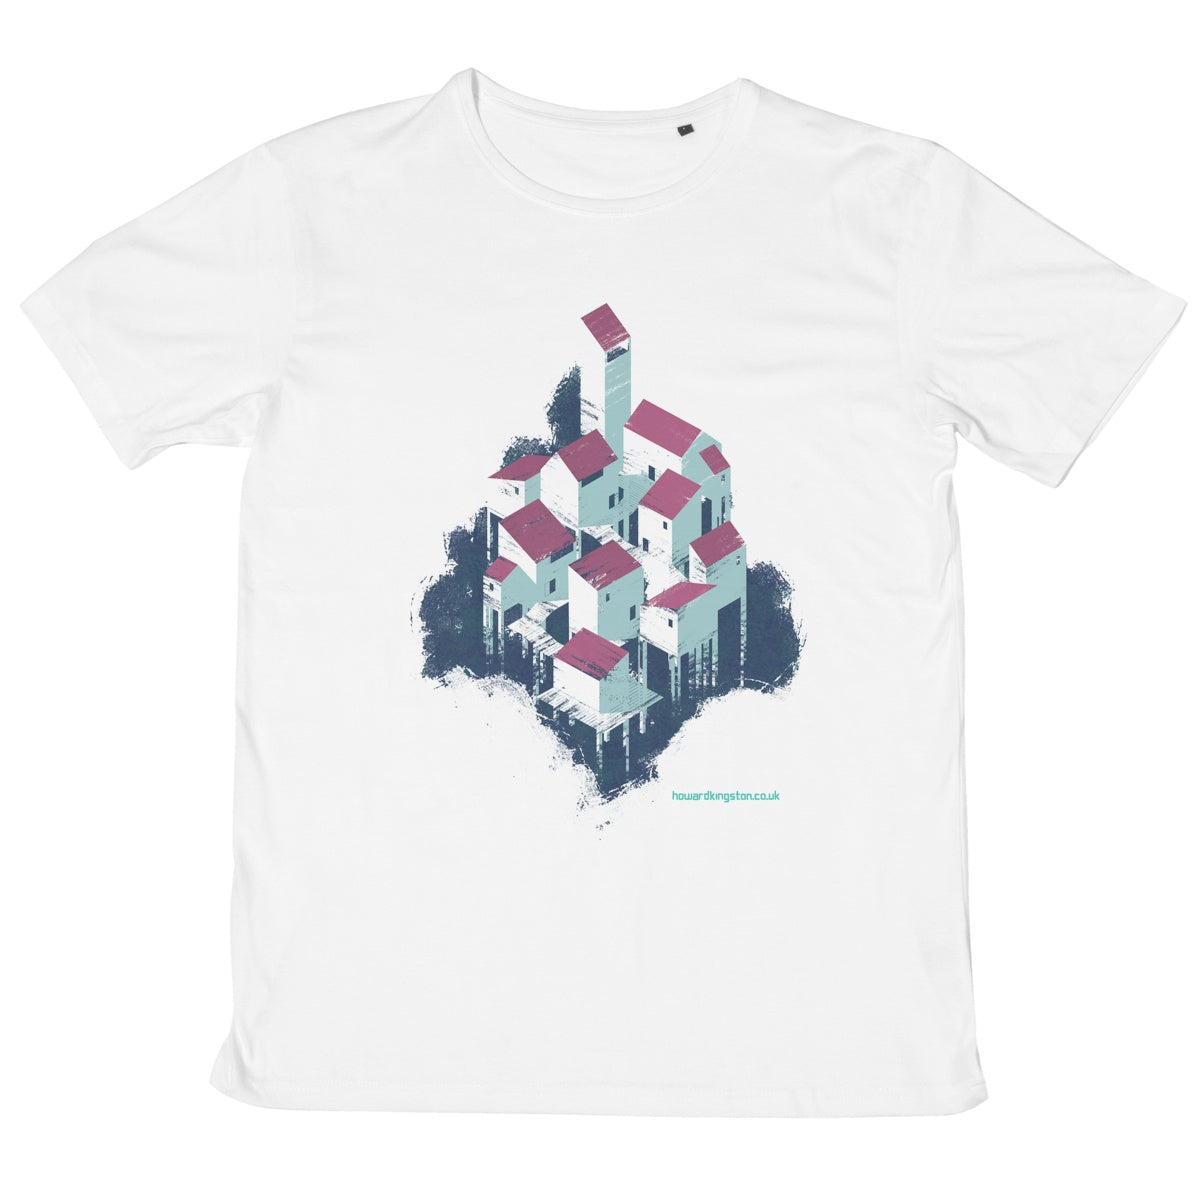 Tree House 3 Men's Tee